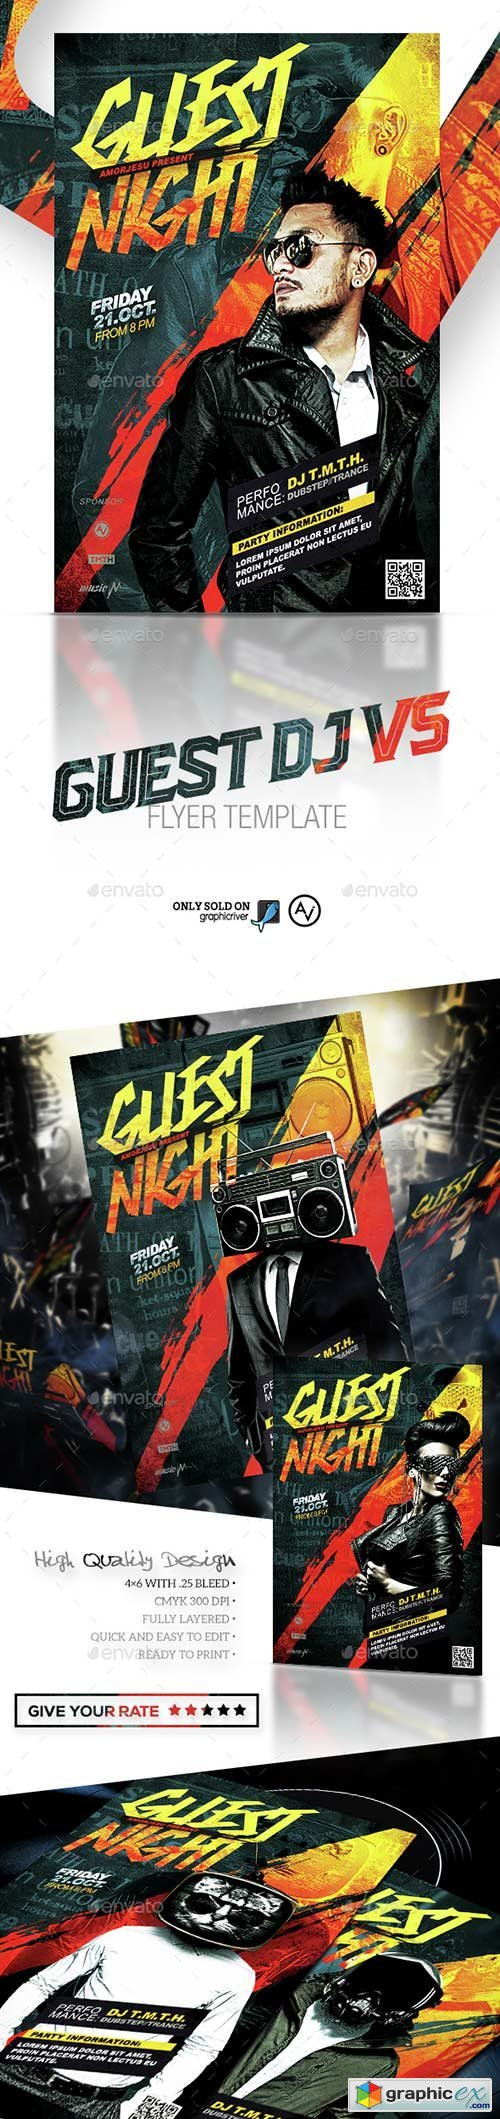 Guest DJ Flyer Template V5